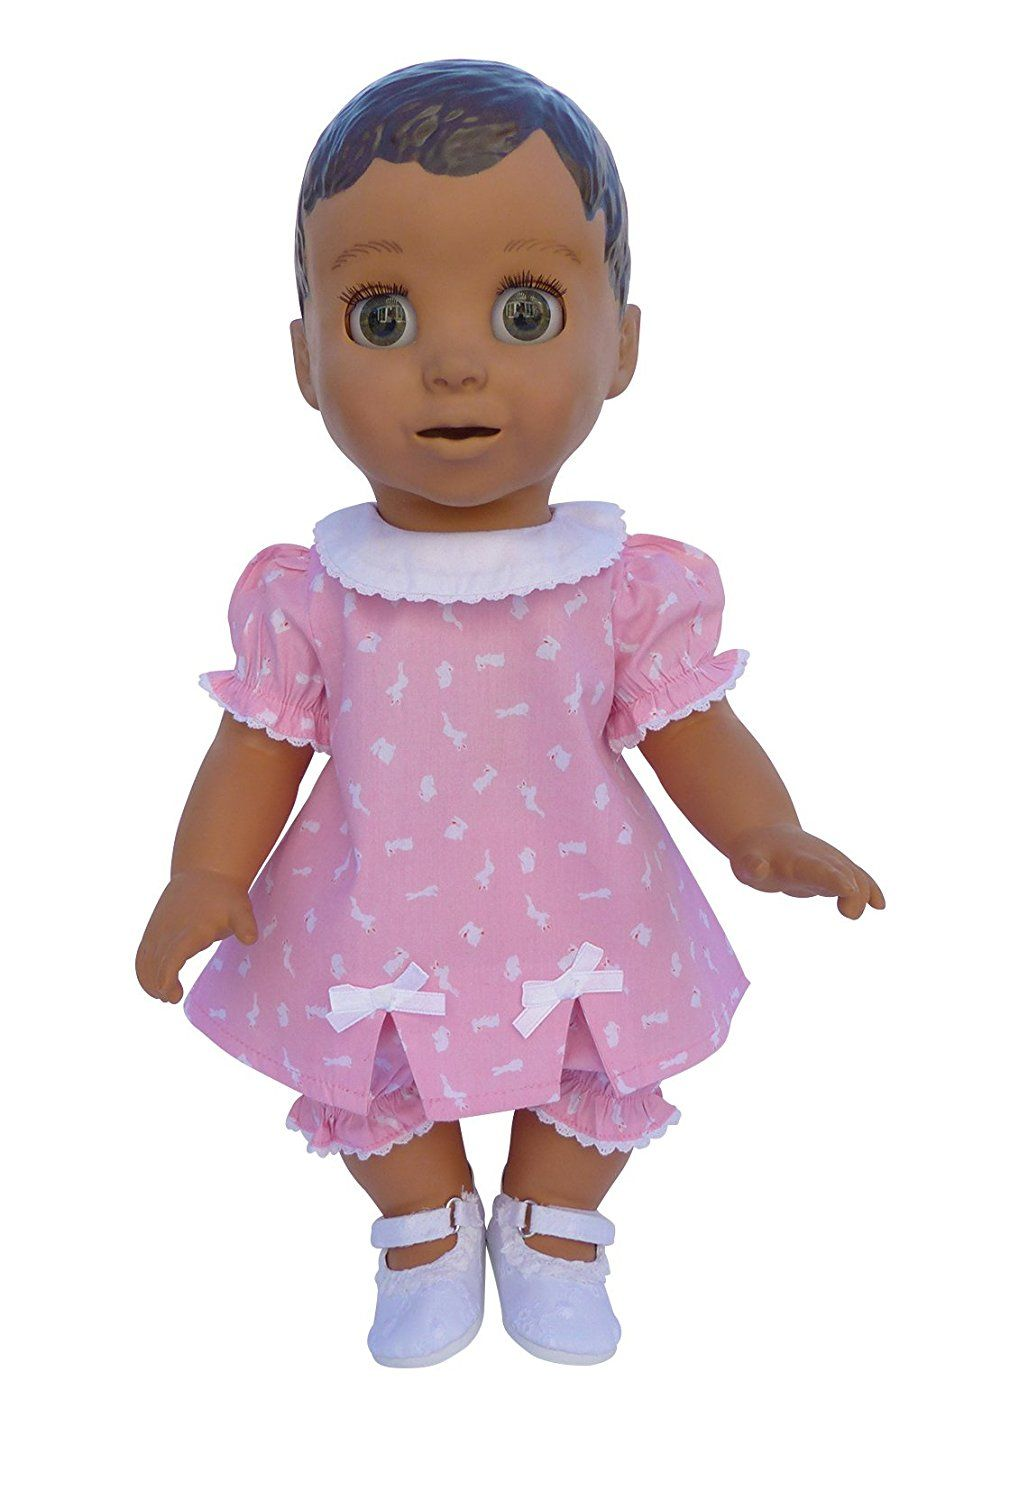 dddb8419fa77 PINK BUNNY DRESS BLOOMERS AND SHOES SET FOR LUVABELLA DOLL FROM FRILLY LILY